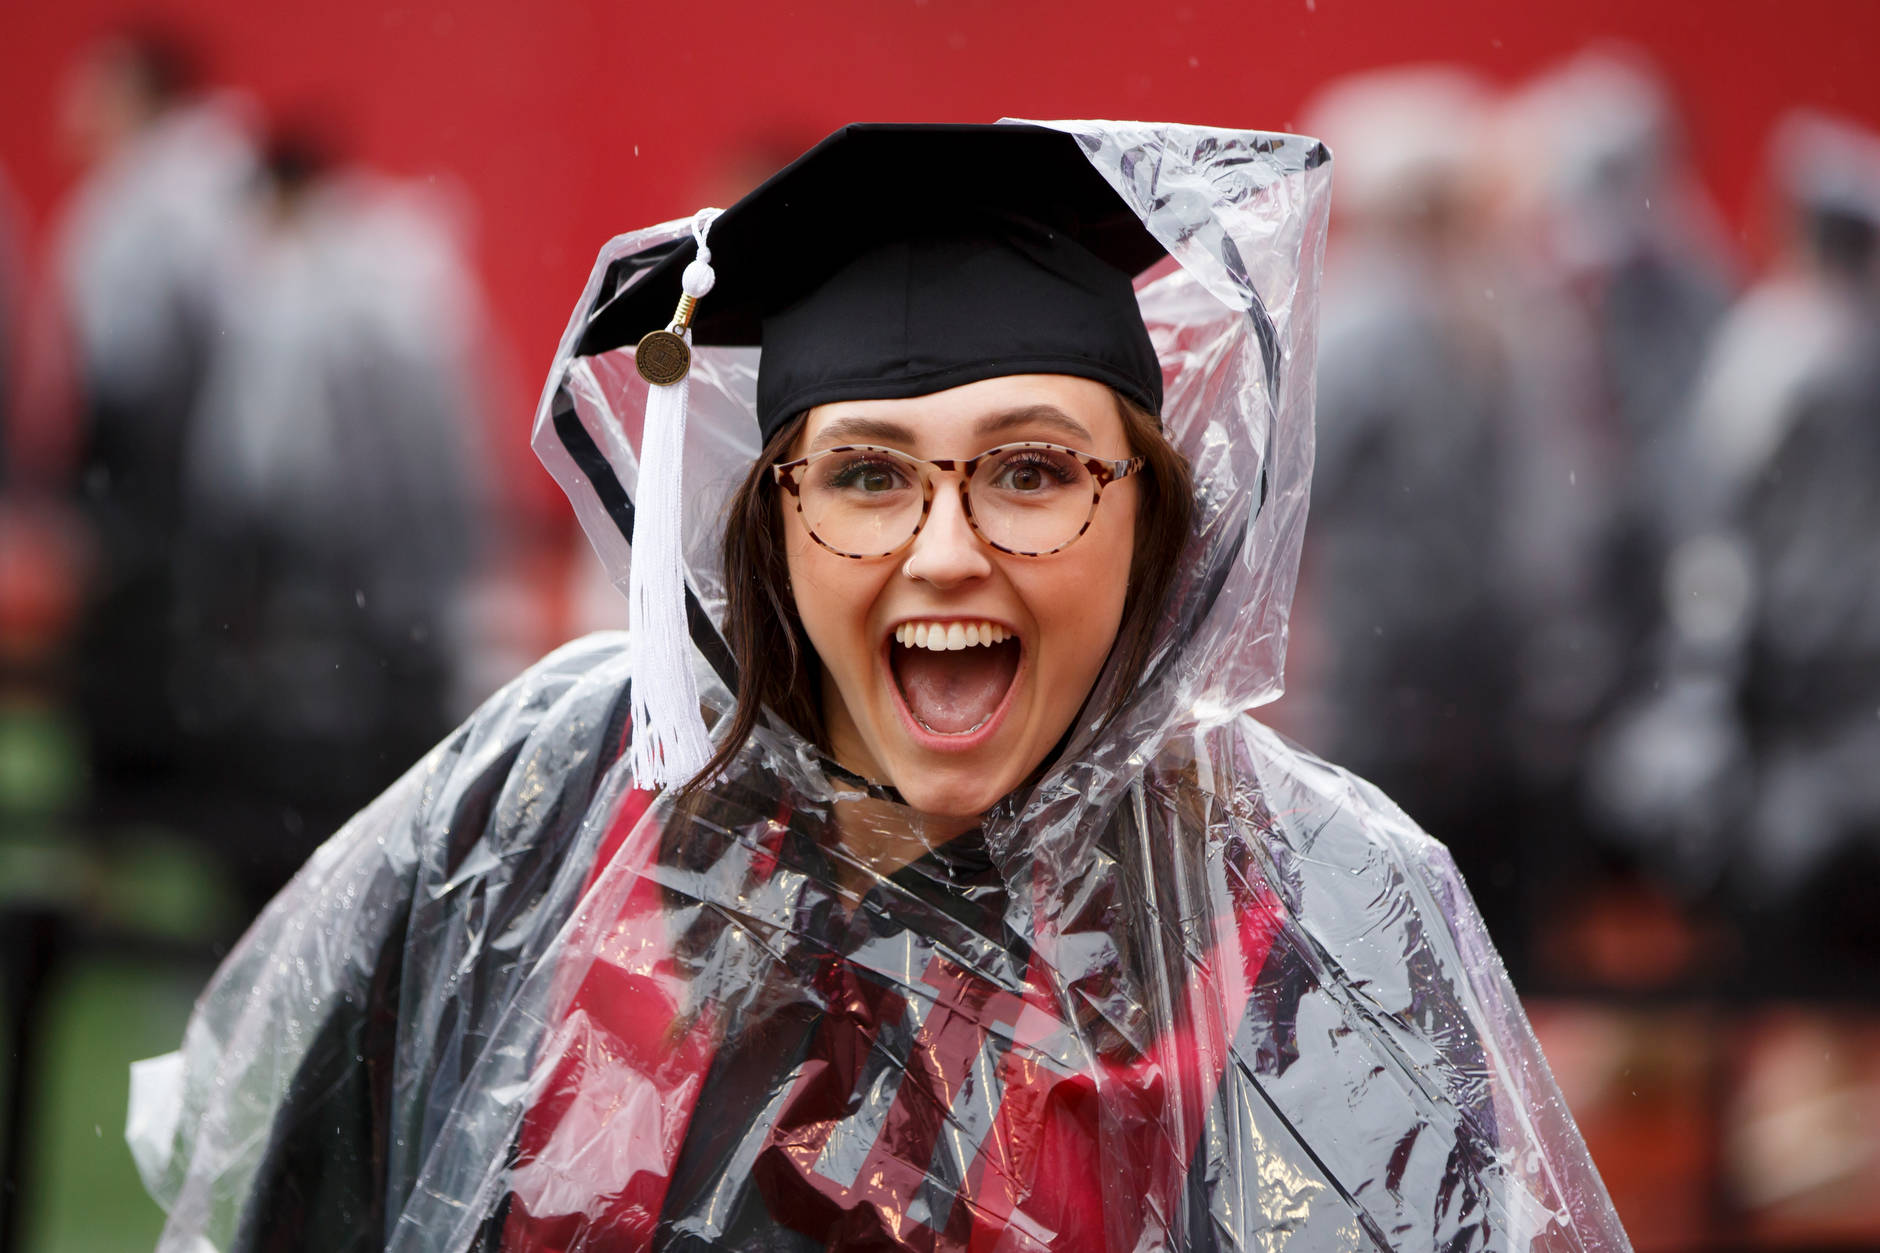 A graduates poses for a photo during the processional for the Indiana University Bloomington Undergraduate Commencement at Memorial Stadium on Saturday, May 4, 2019. (James Brosher/Indiana University)